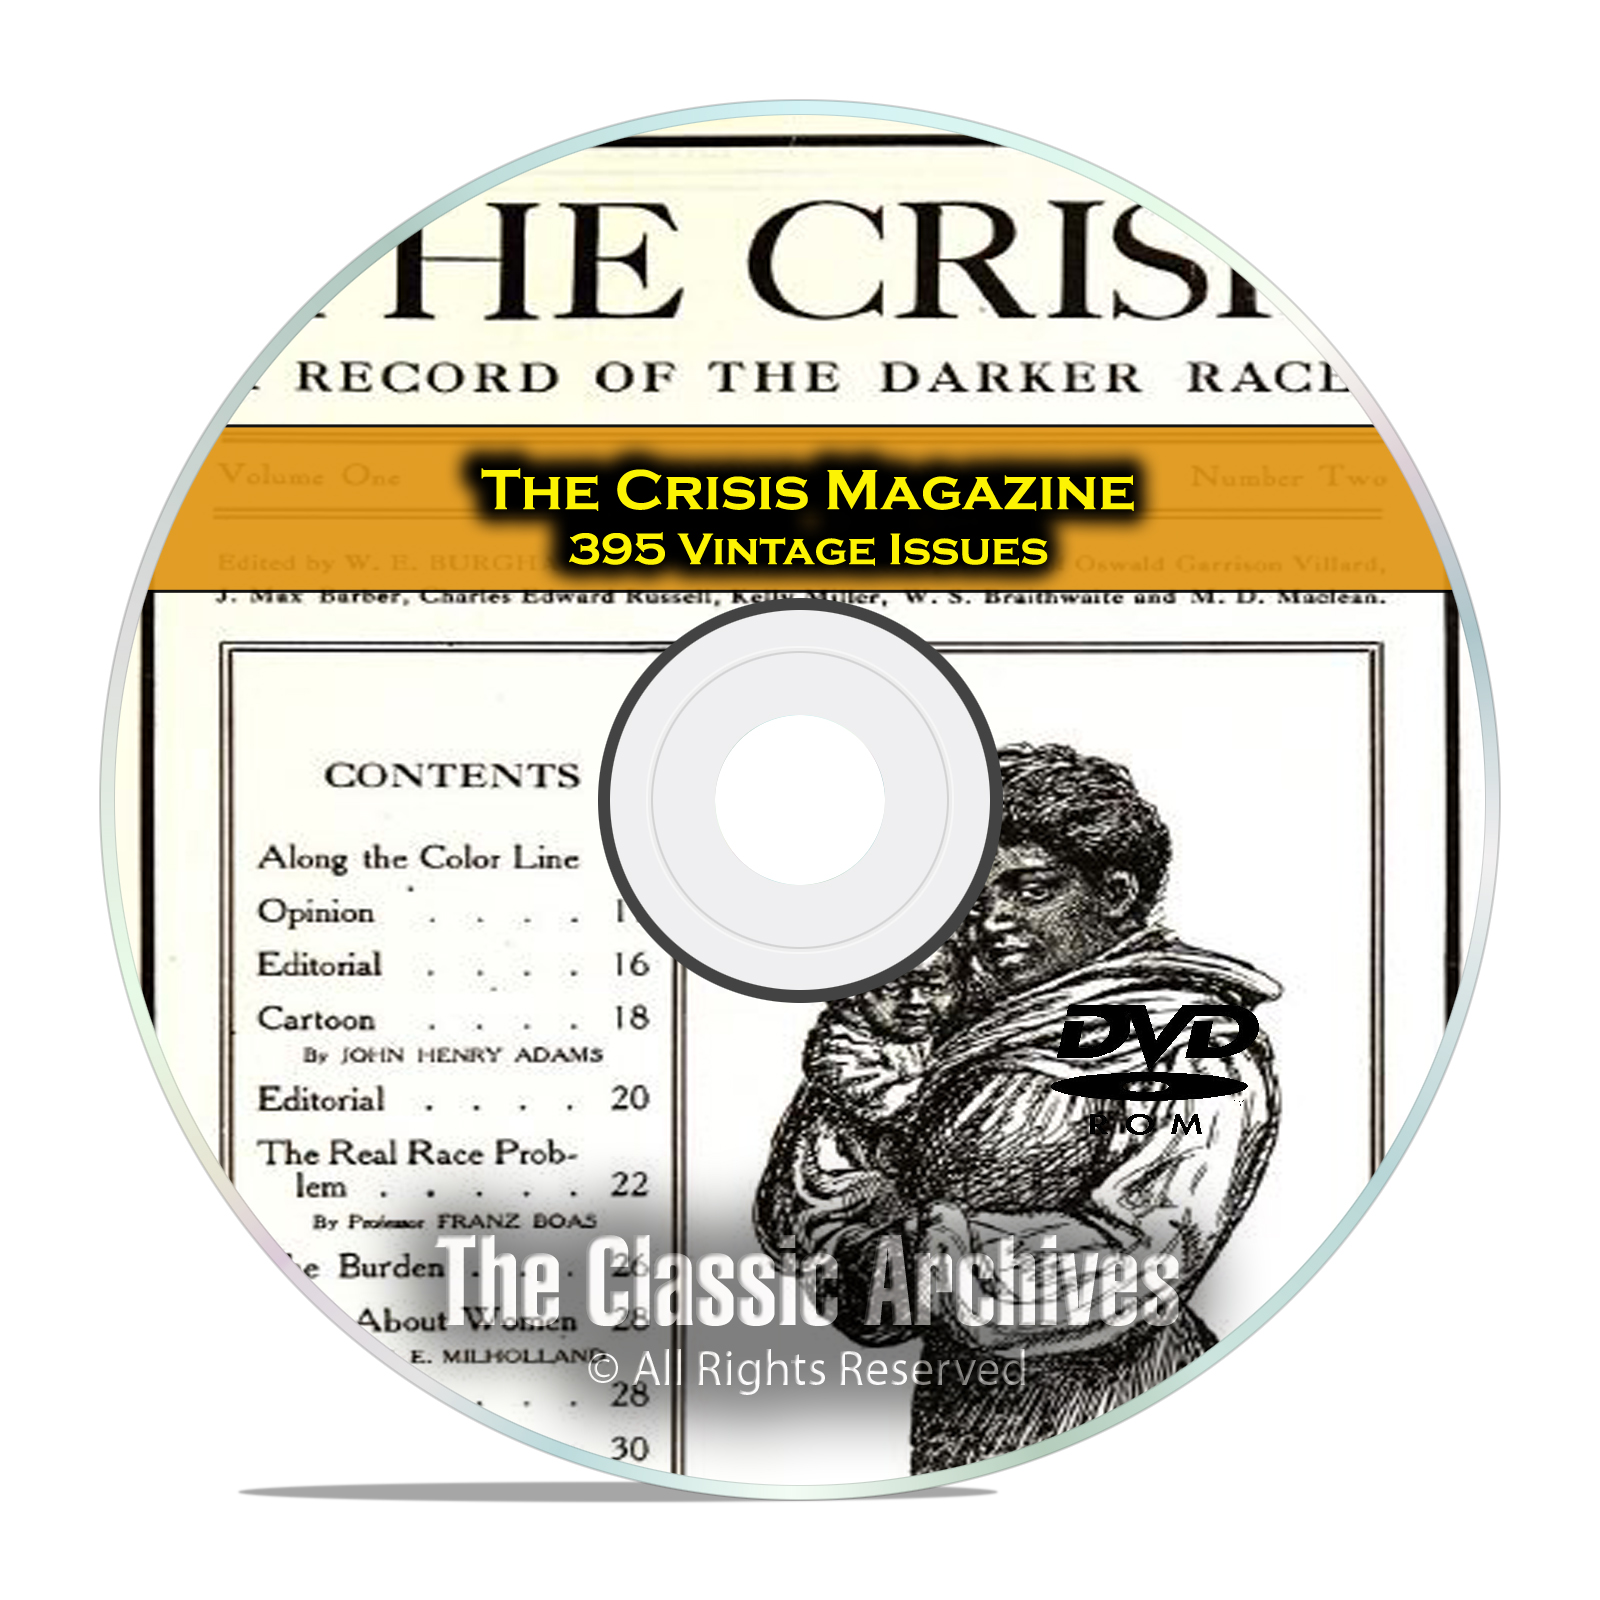 The Crisis Magazine, 395 Vintage Issues 1910-1963 American Civil Rights DVD